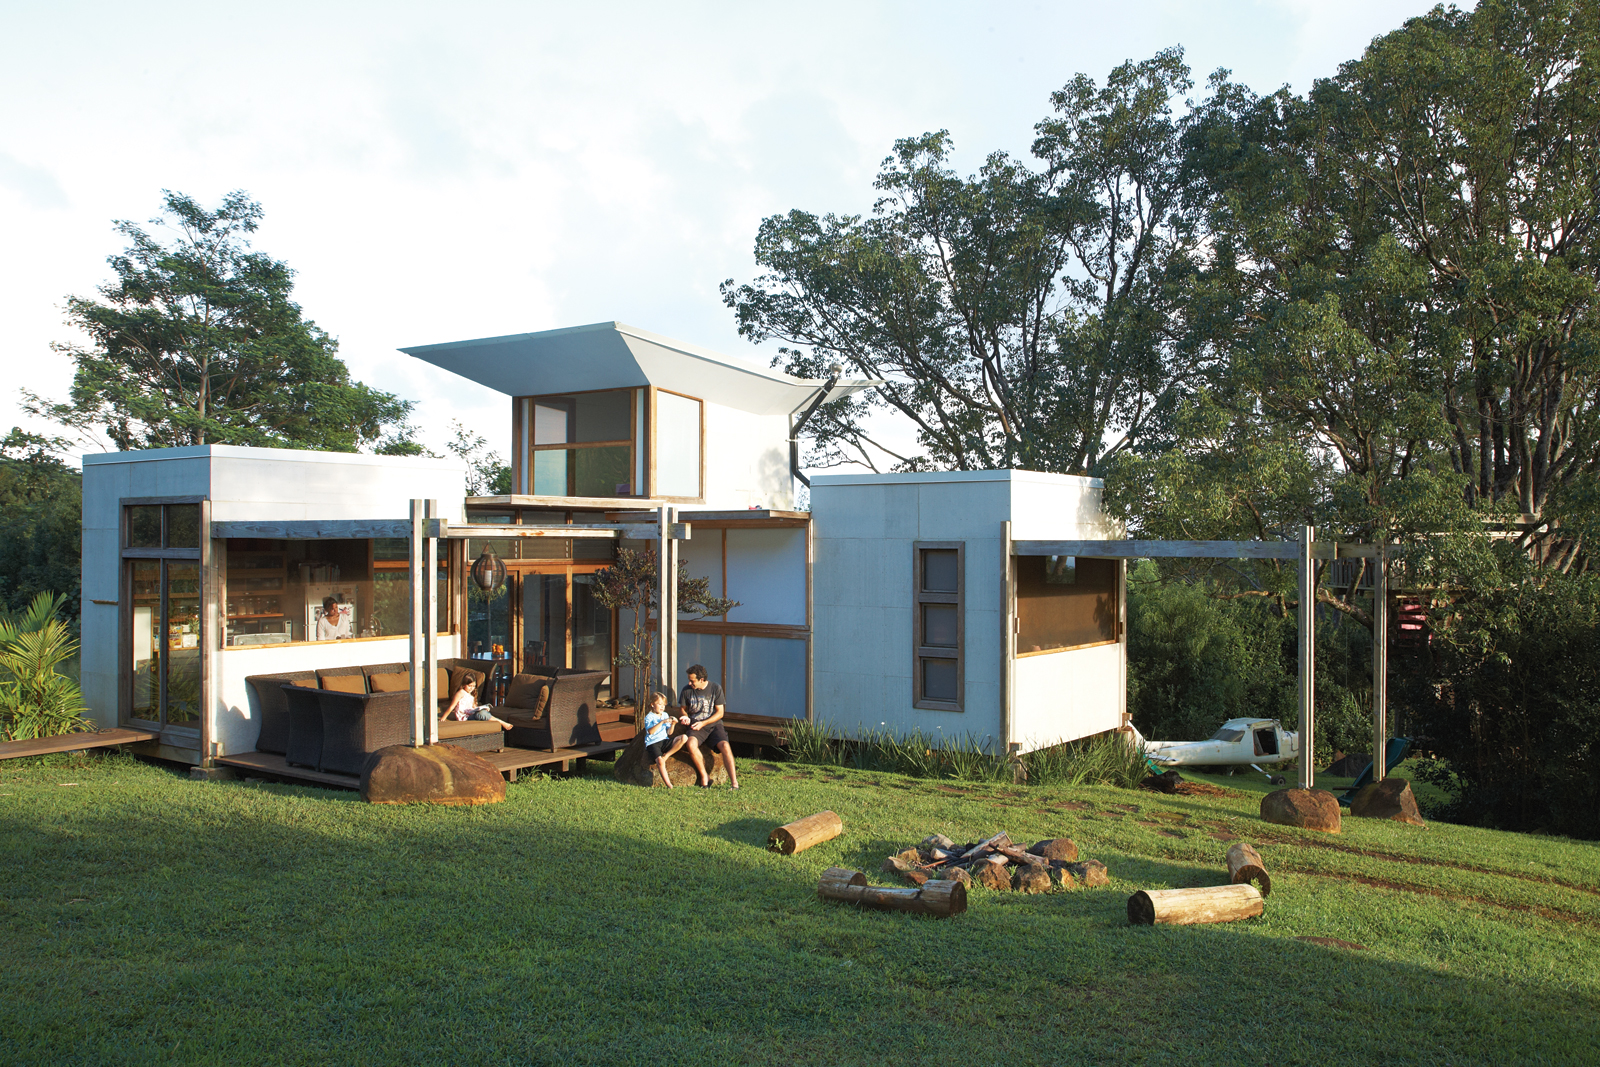 DIY design home in Kauai